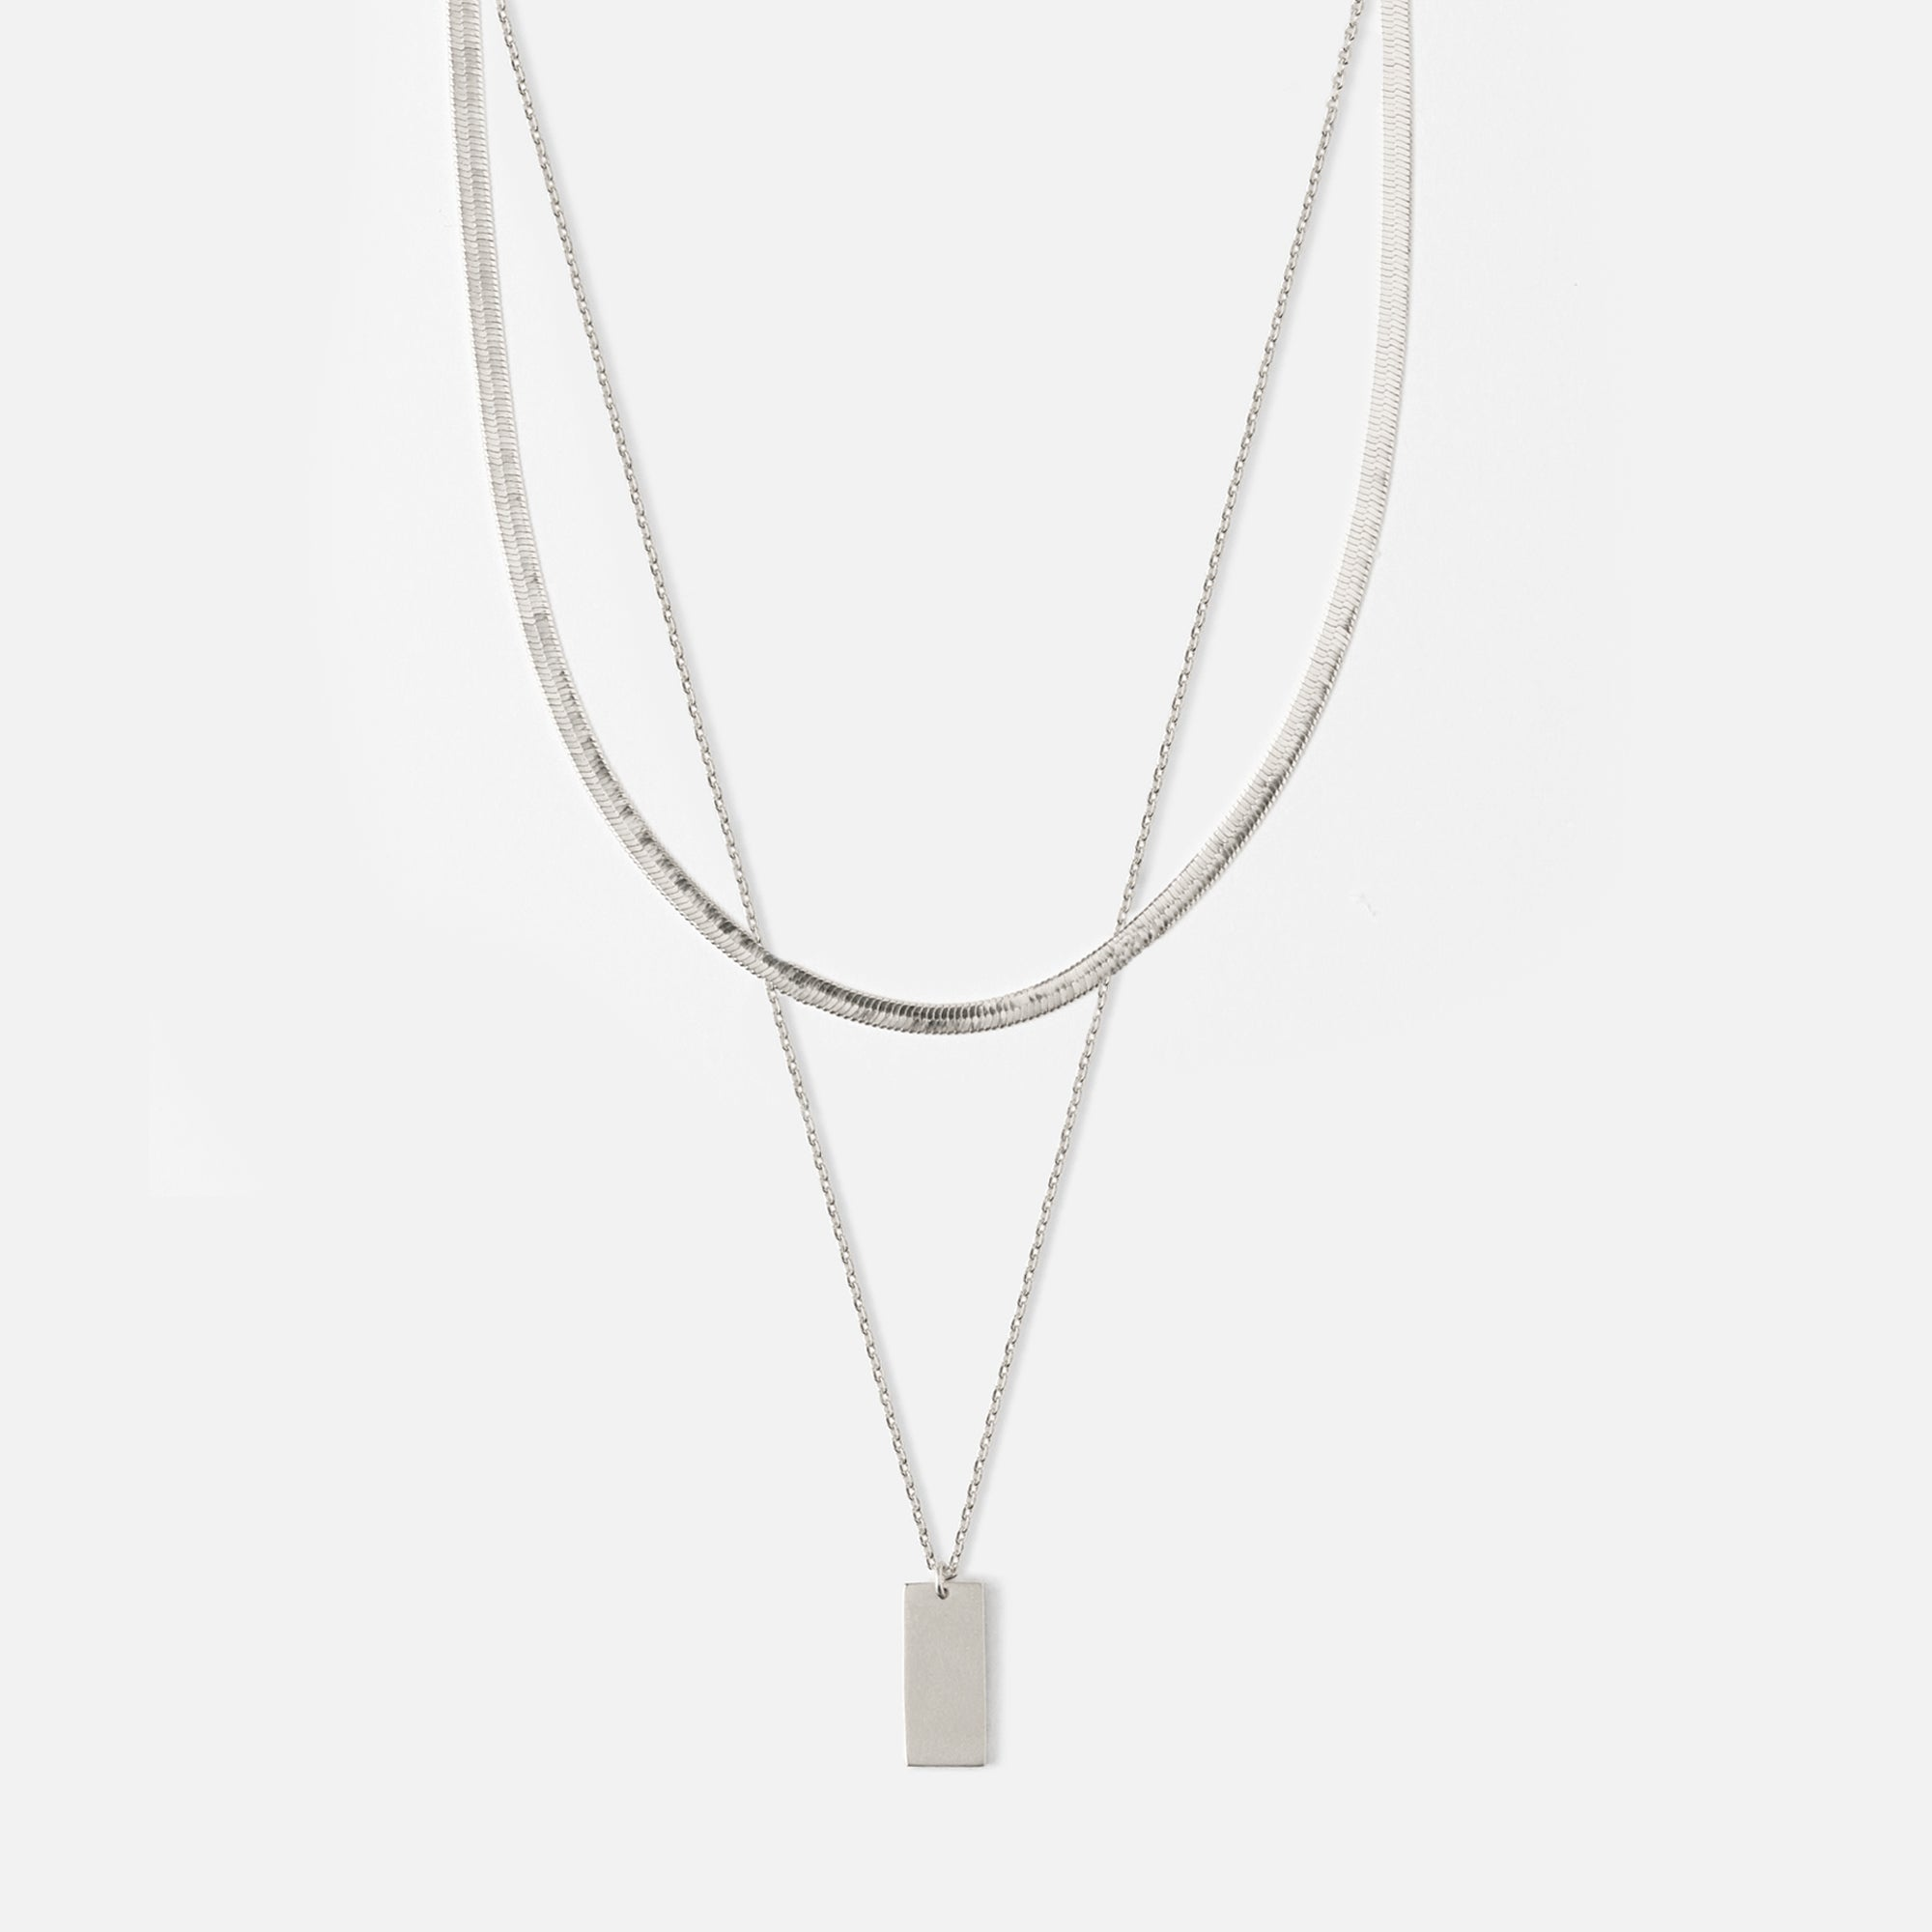 Clean Tag & Flat Curb Necklace - Silver